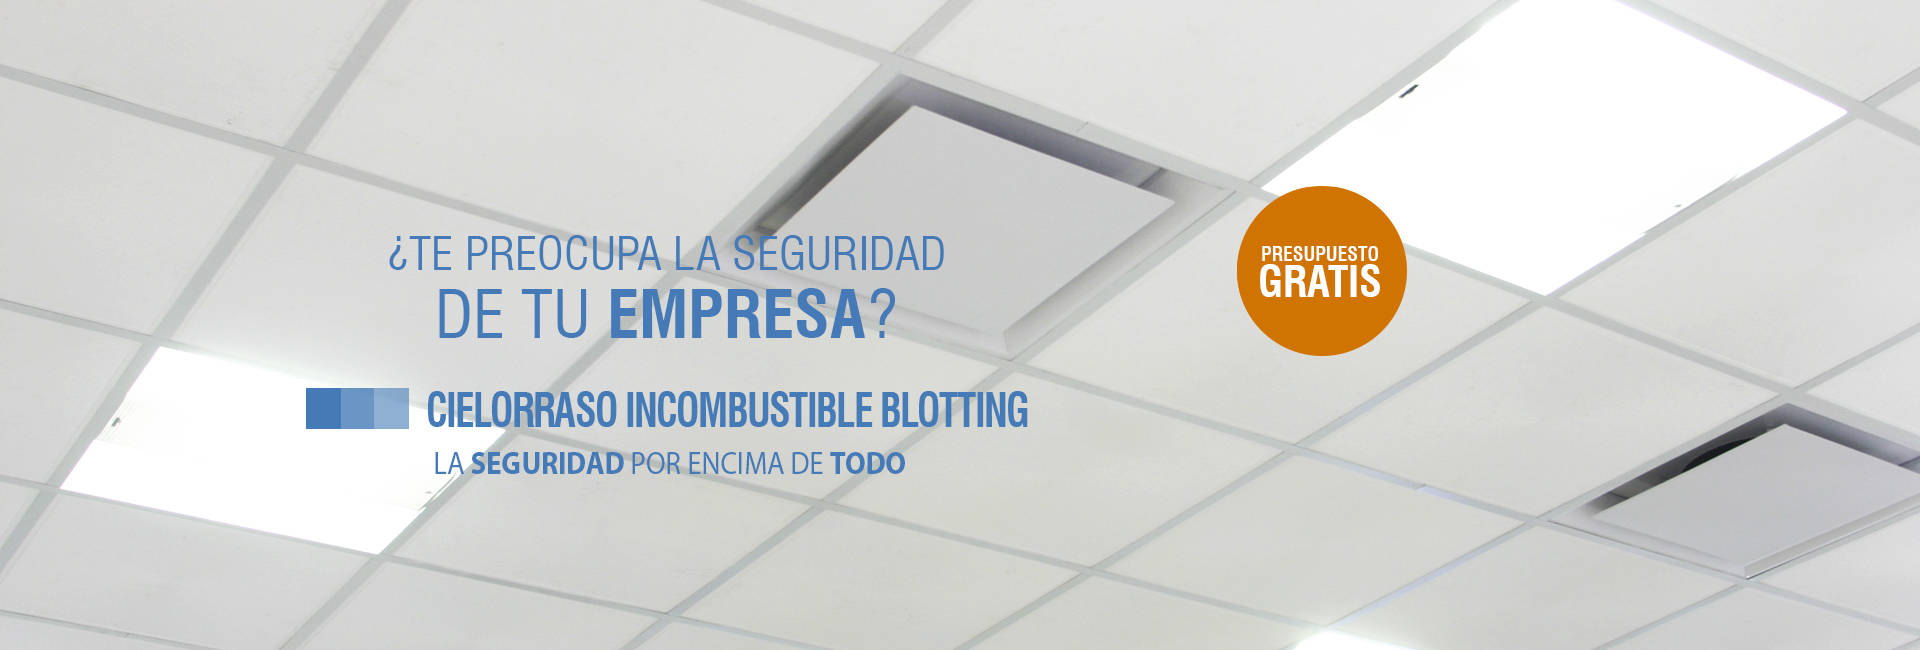 Cielorraso Incombustible Blotting